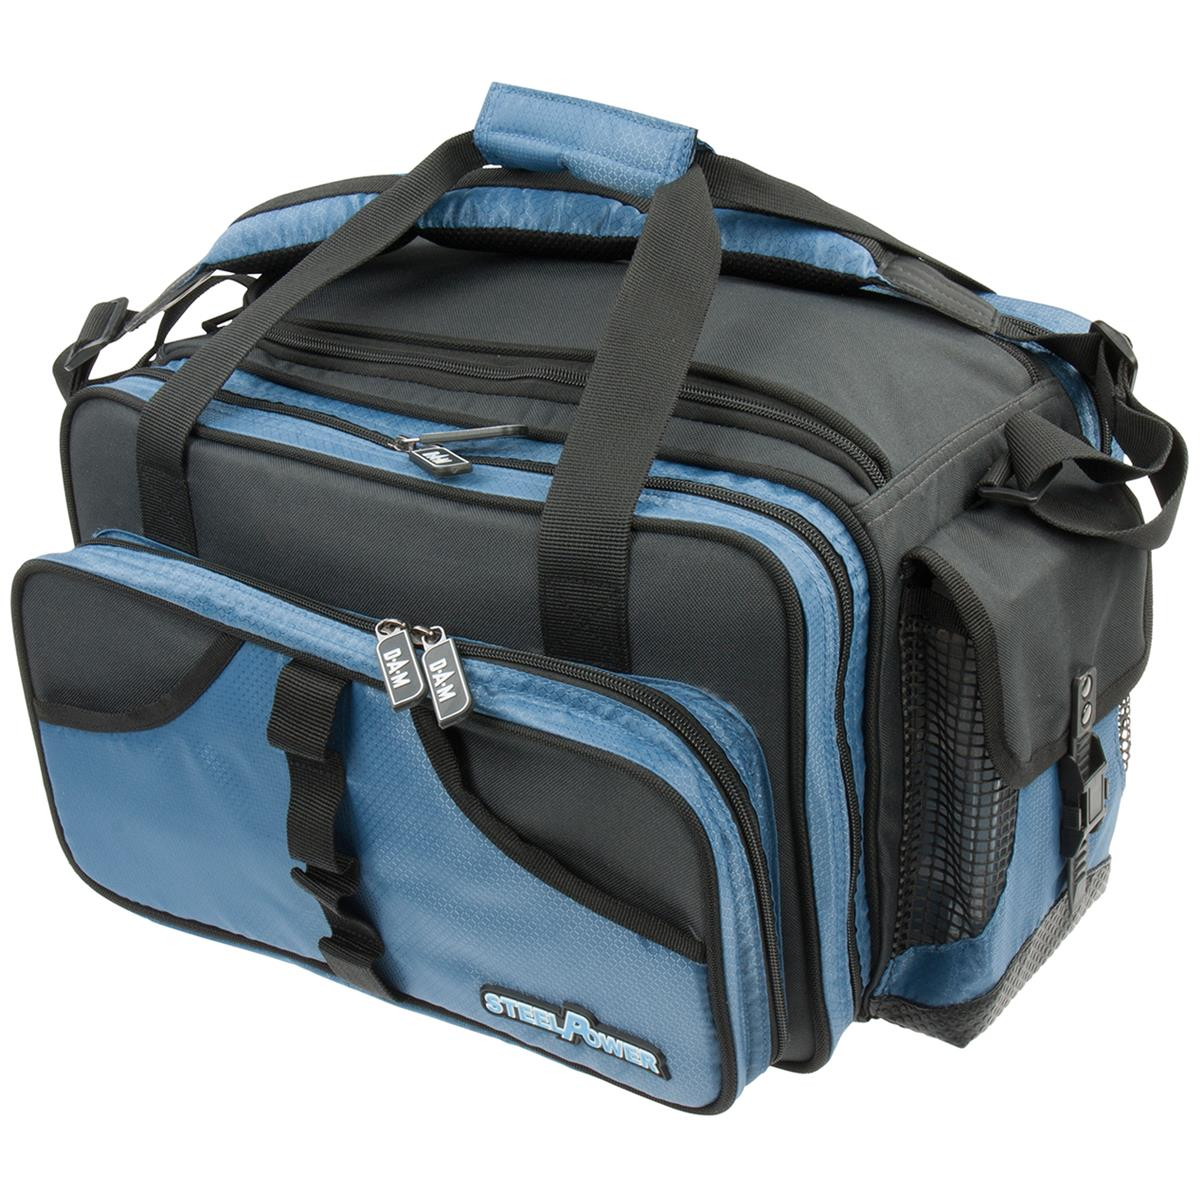 DAM Steelpower Blue Havfiskebag